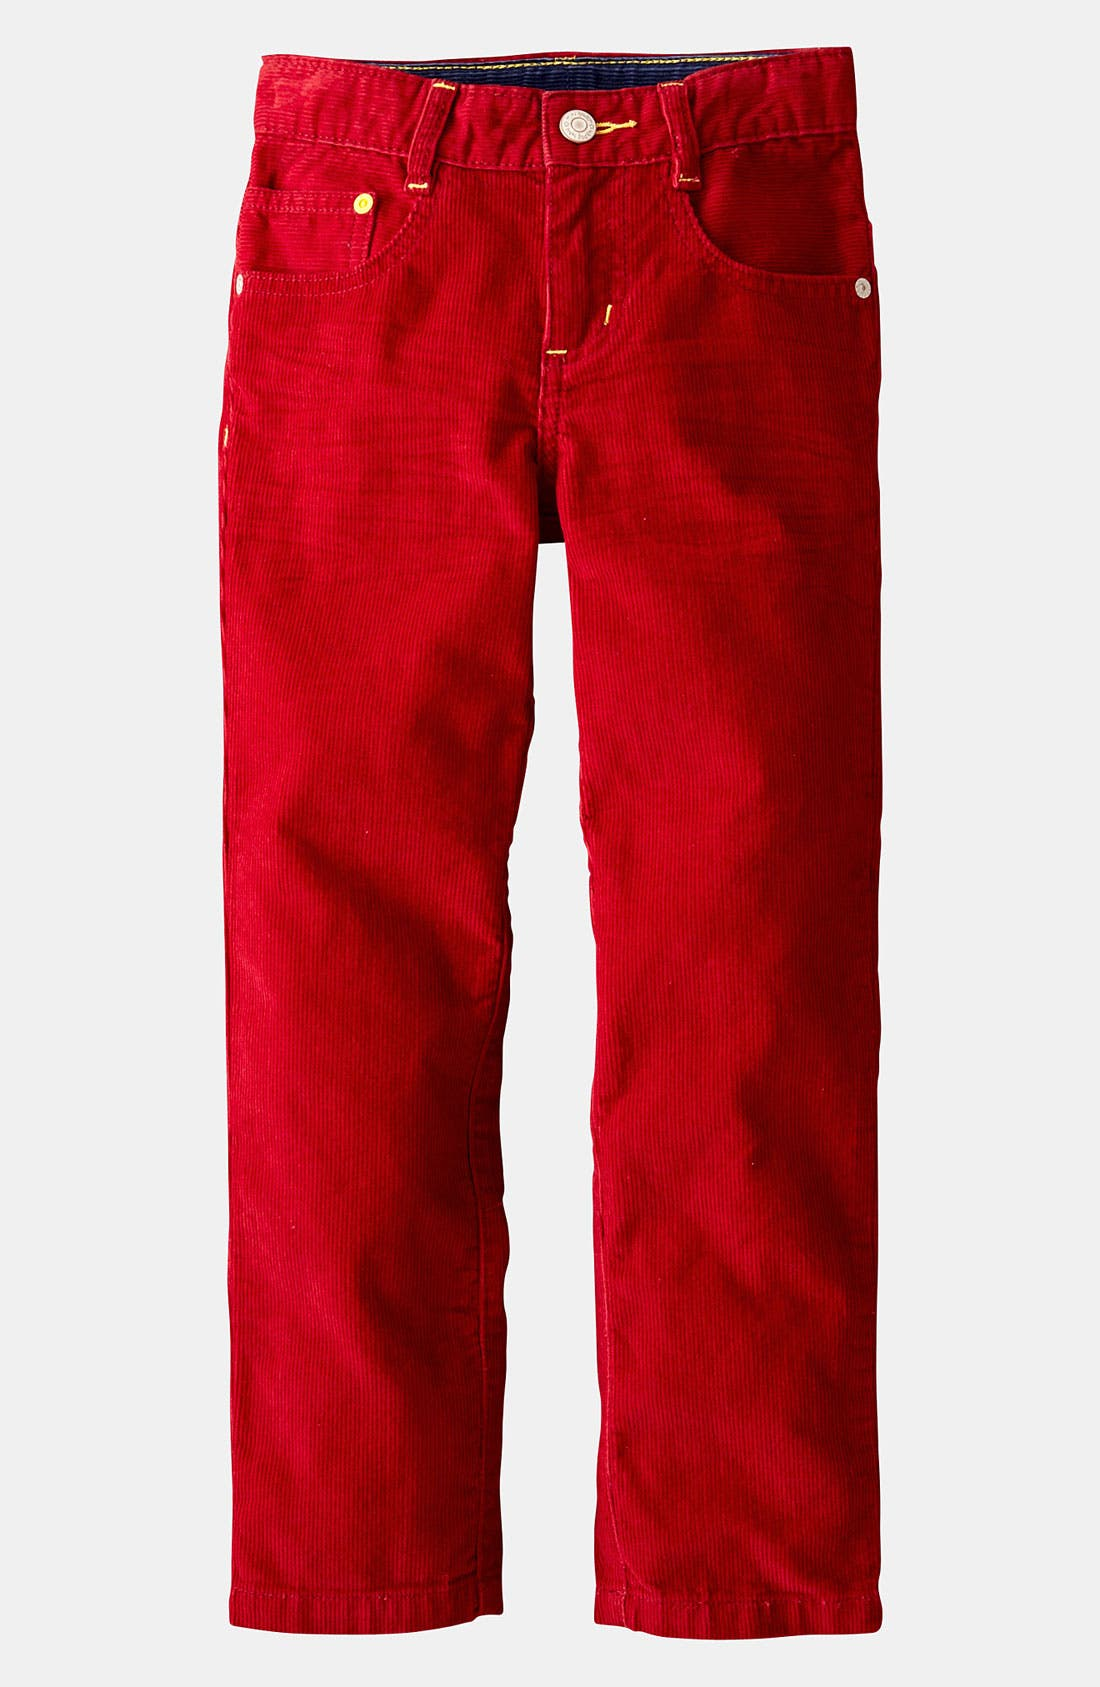 Main Image - Mini Boden 'Preppy' Slim Corduroy Pants (Toddler)